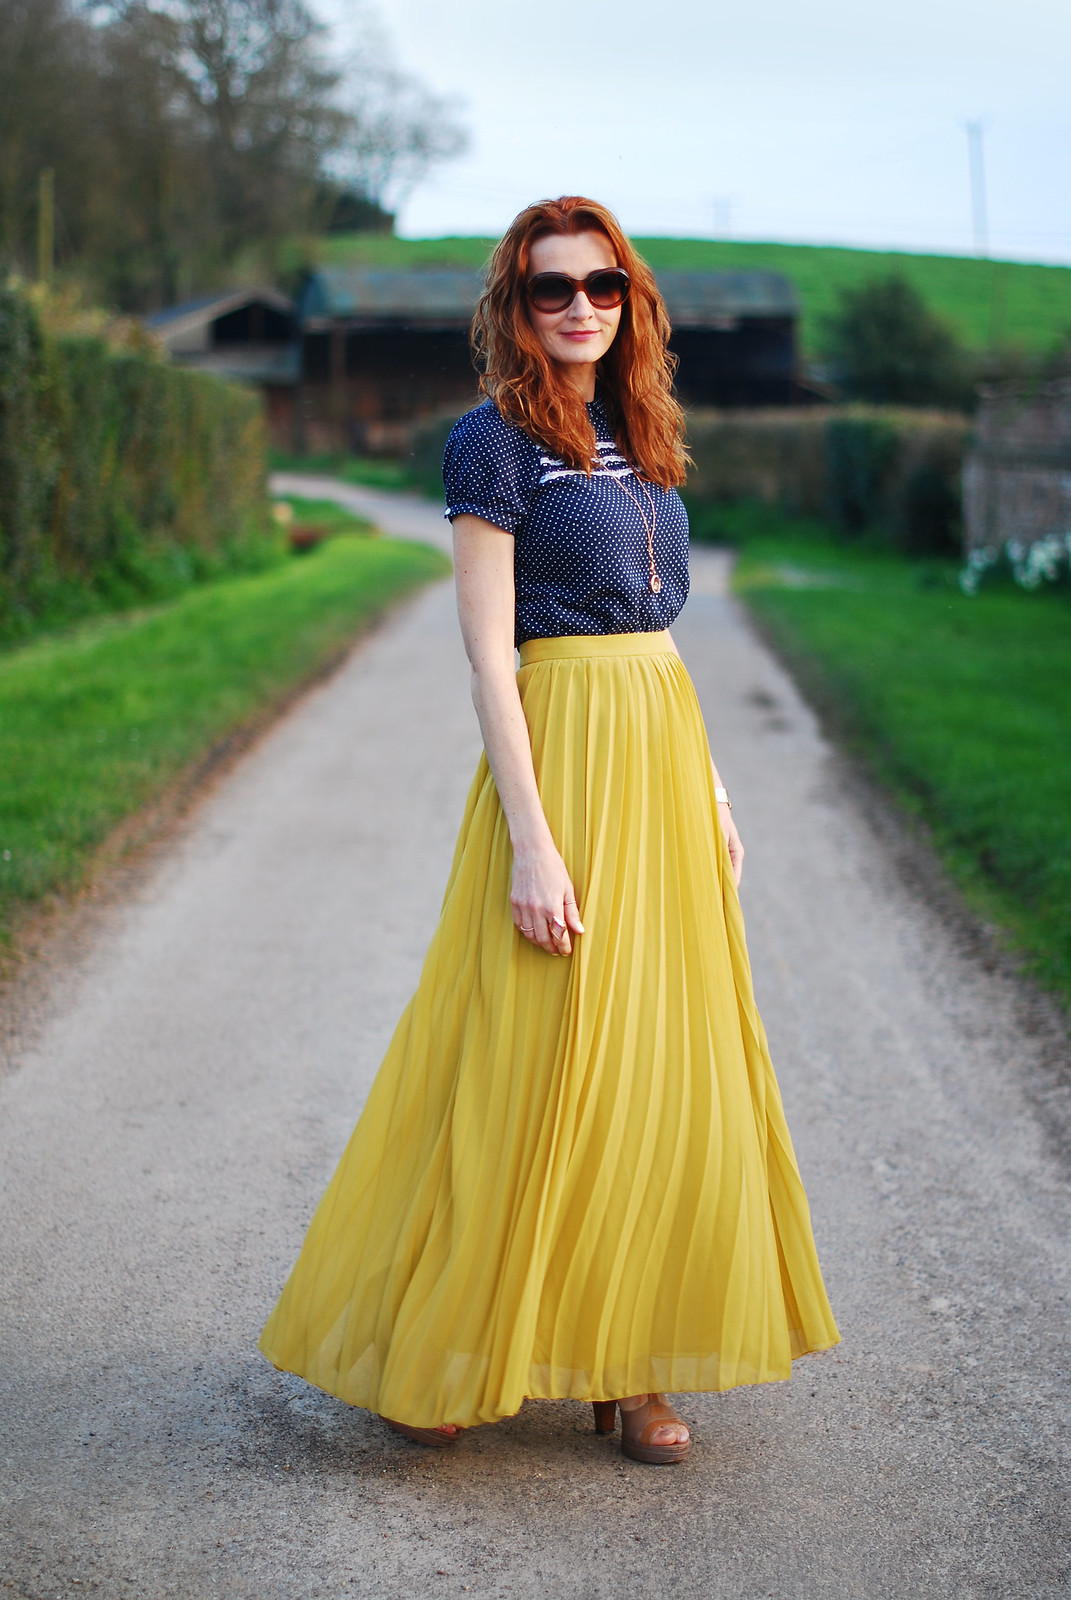 Navy polka dots & mustard yellow pleated skirt